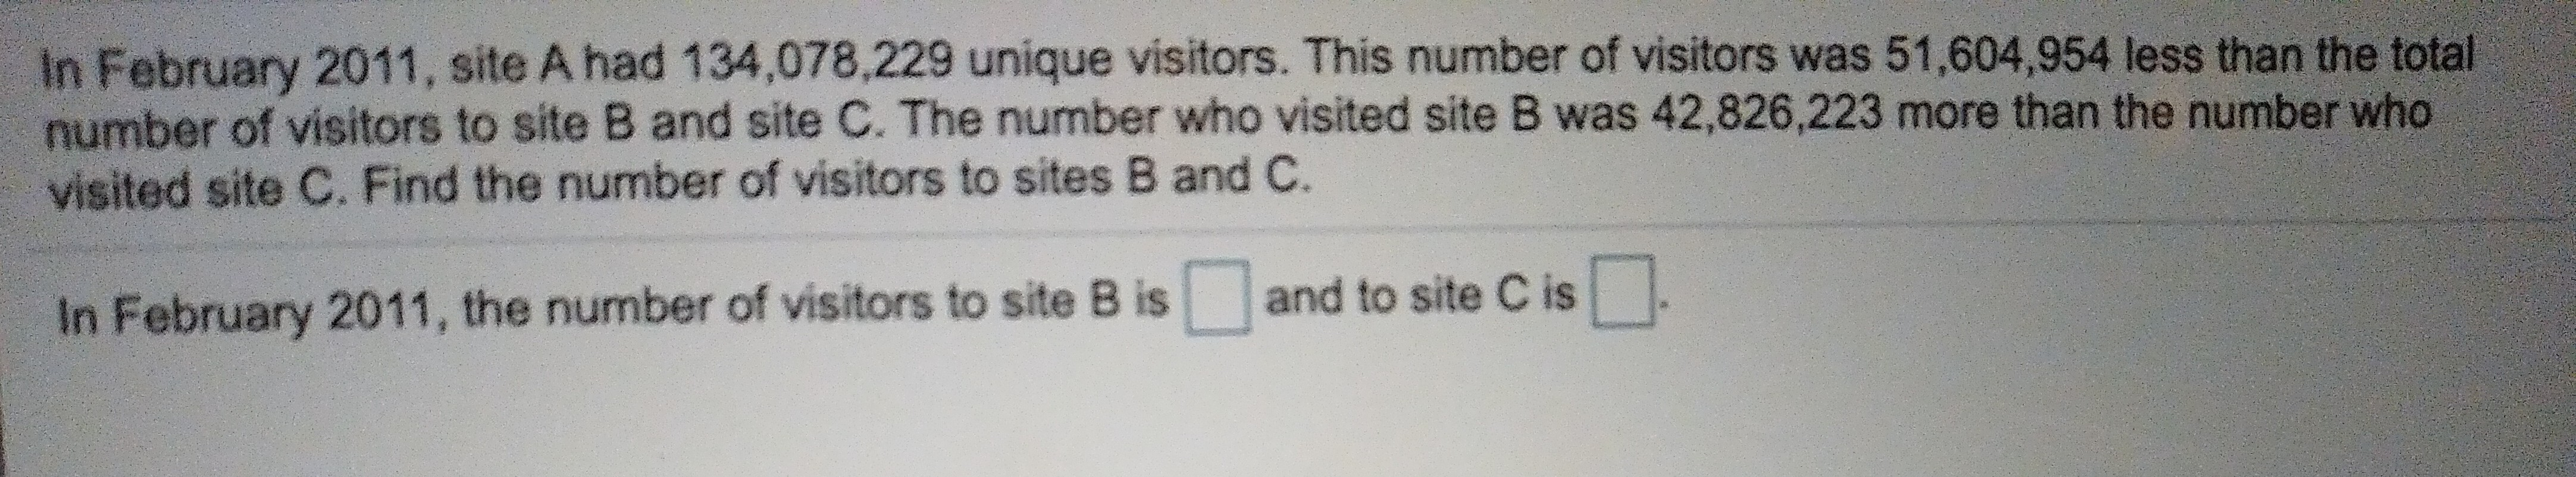 In February 2011, site A had 134,078,229 unique visitors. This number of visitors was 51,604,954 less than the total number of visitors to site B and site C. The number who visited site B was 42,826,223 more than the number who visited site C. Find the number of visitors to sites B and C. a and to site C is In February 2011, the number of visitors to site B is